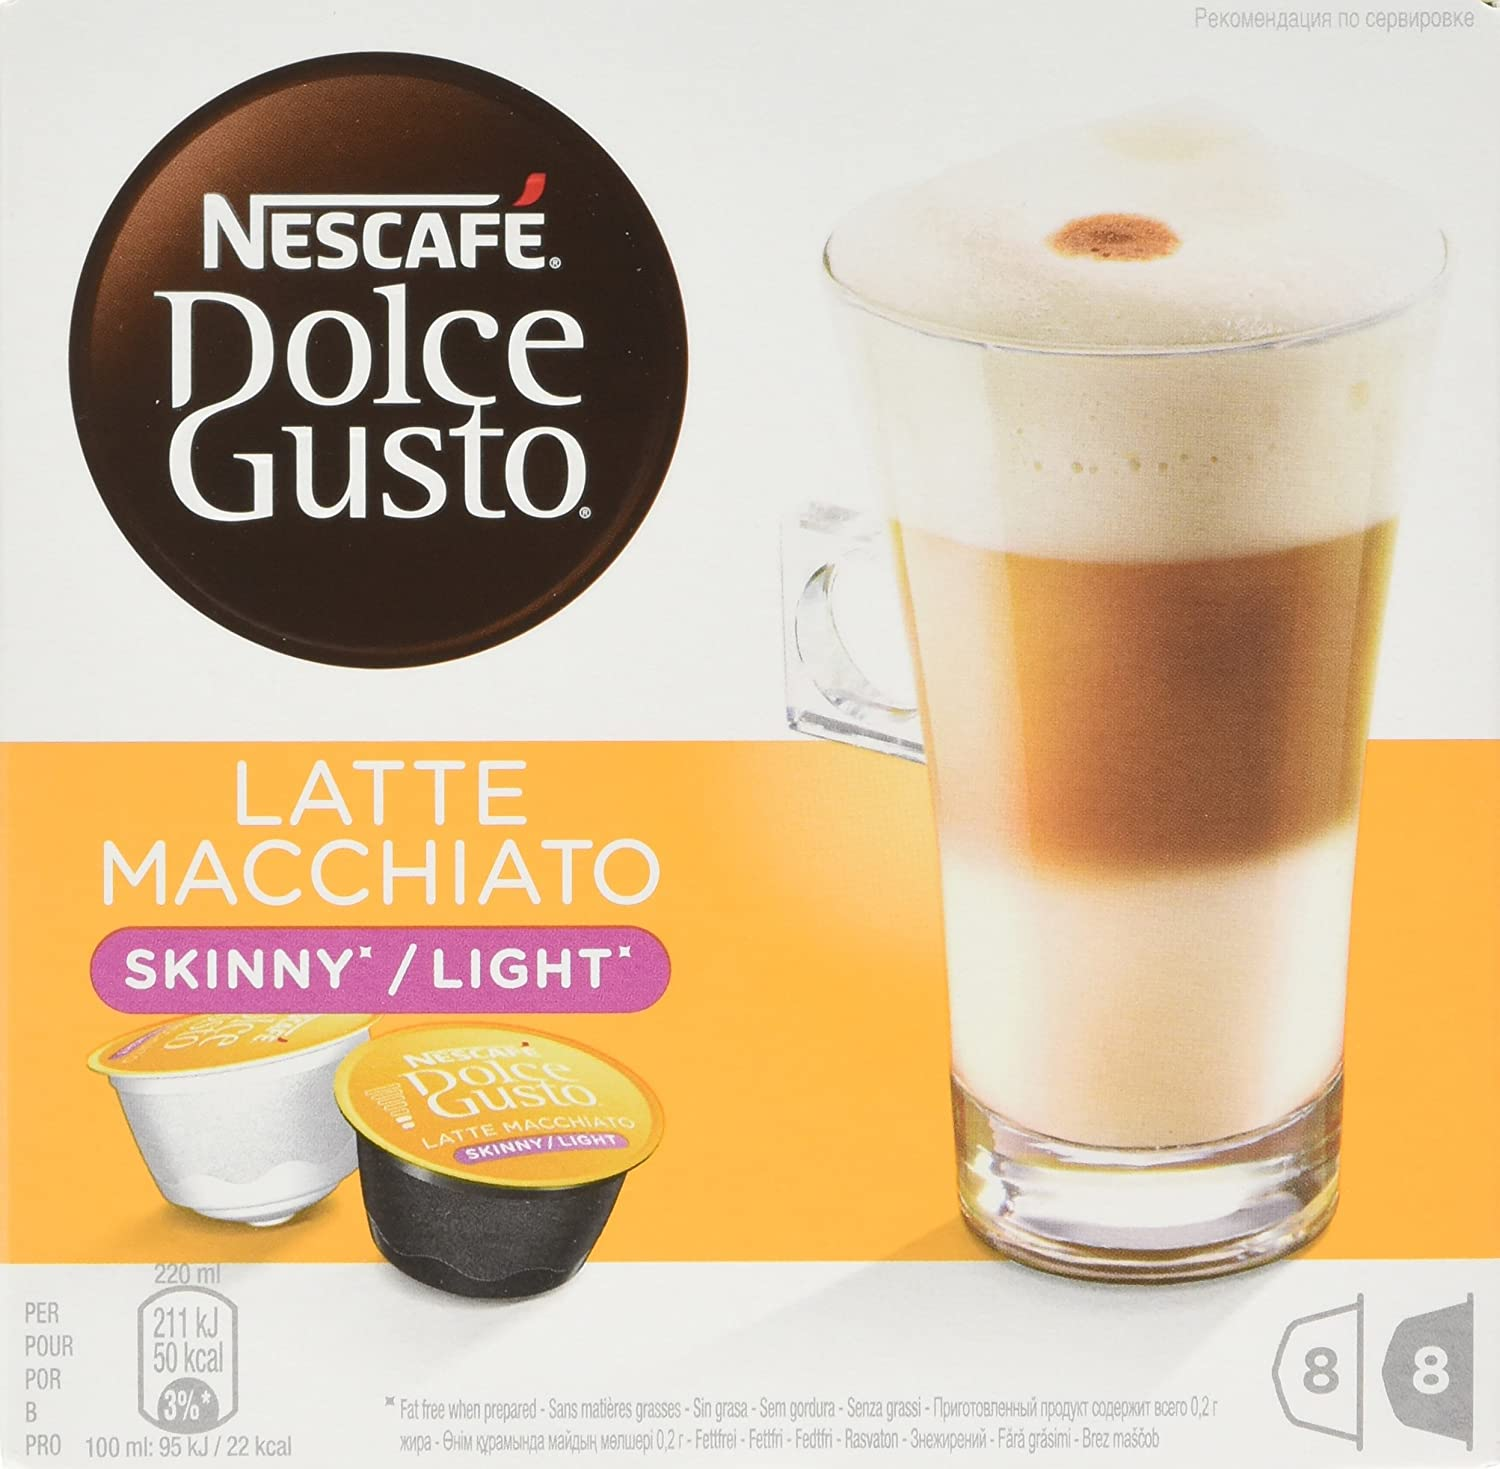 Coffee Home & Garden Qualified Nescafe Dolce Gusto Latte Macchiato Coffee Pods Factory Direct Selling Price